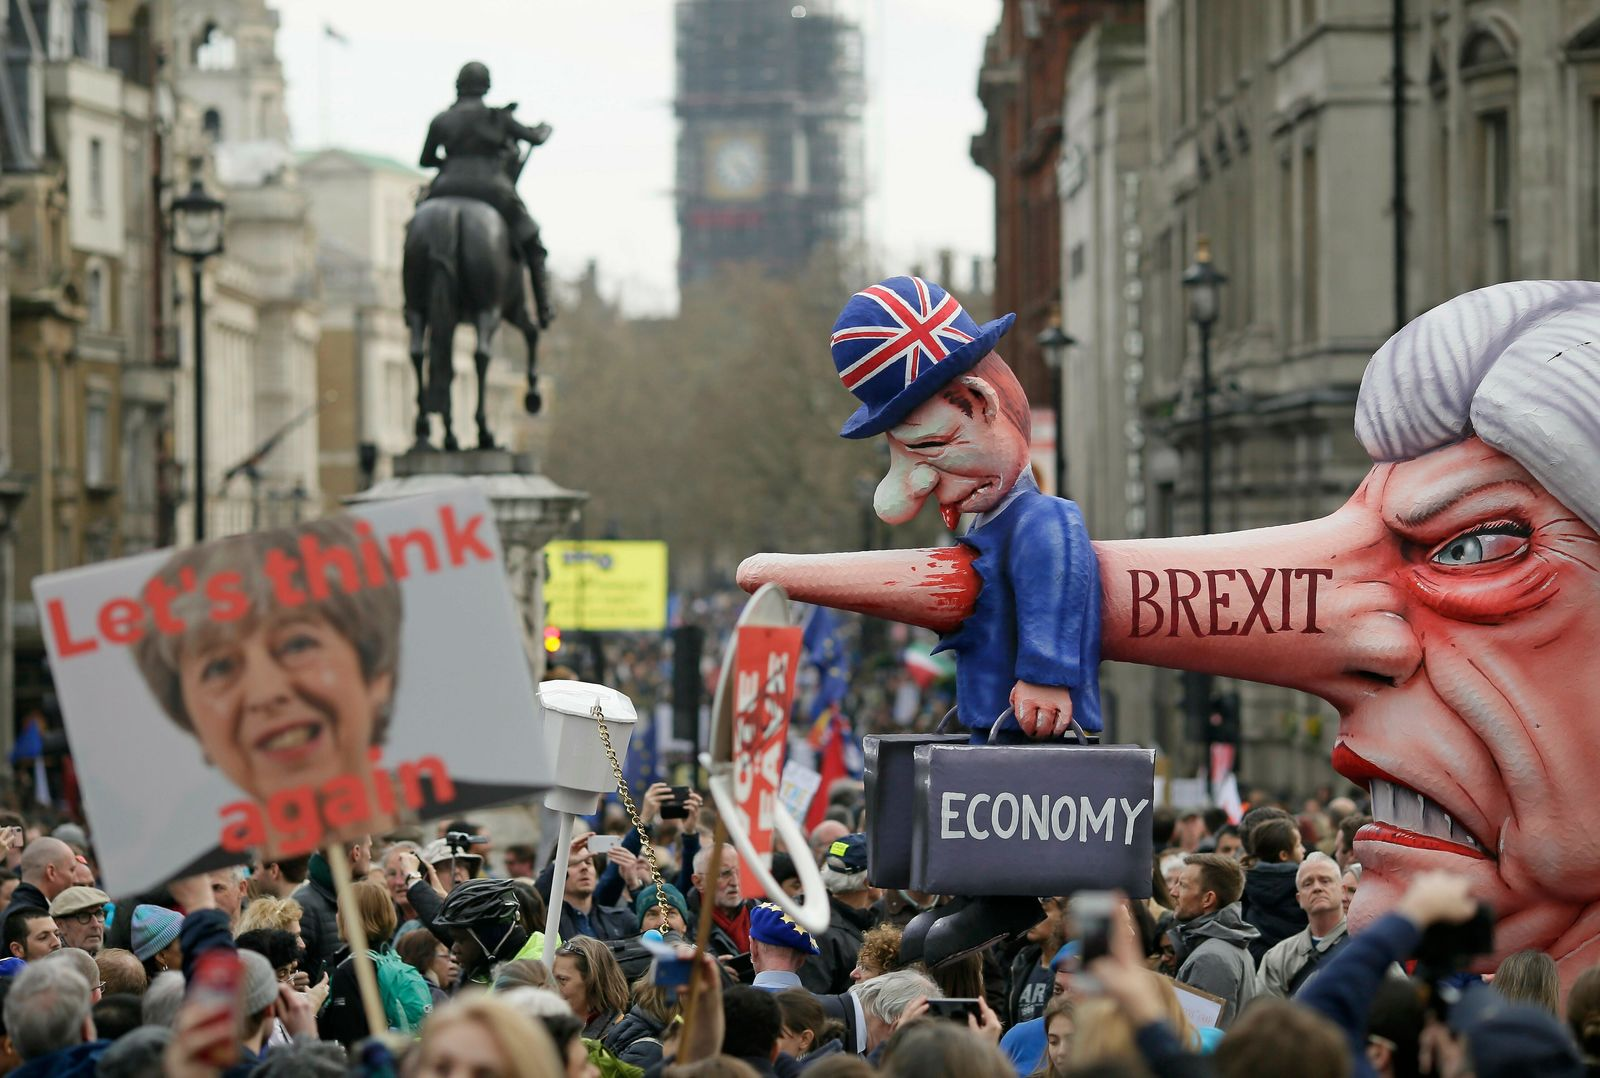 An effigy of British Prime Minister Theresa May is wheeled through Trafalgar Square during a Peoples Vote anti-Brexit march in London, Saturday, March 23, 2019.. (AP Photo/Tim Ireland)